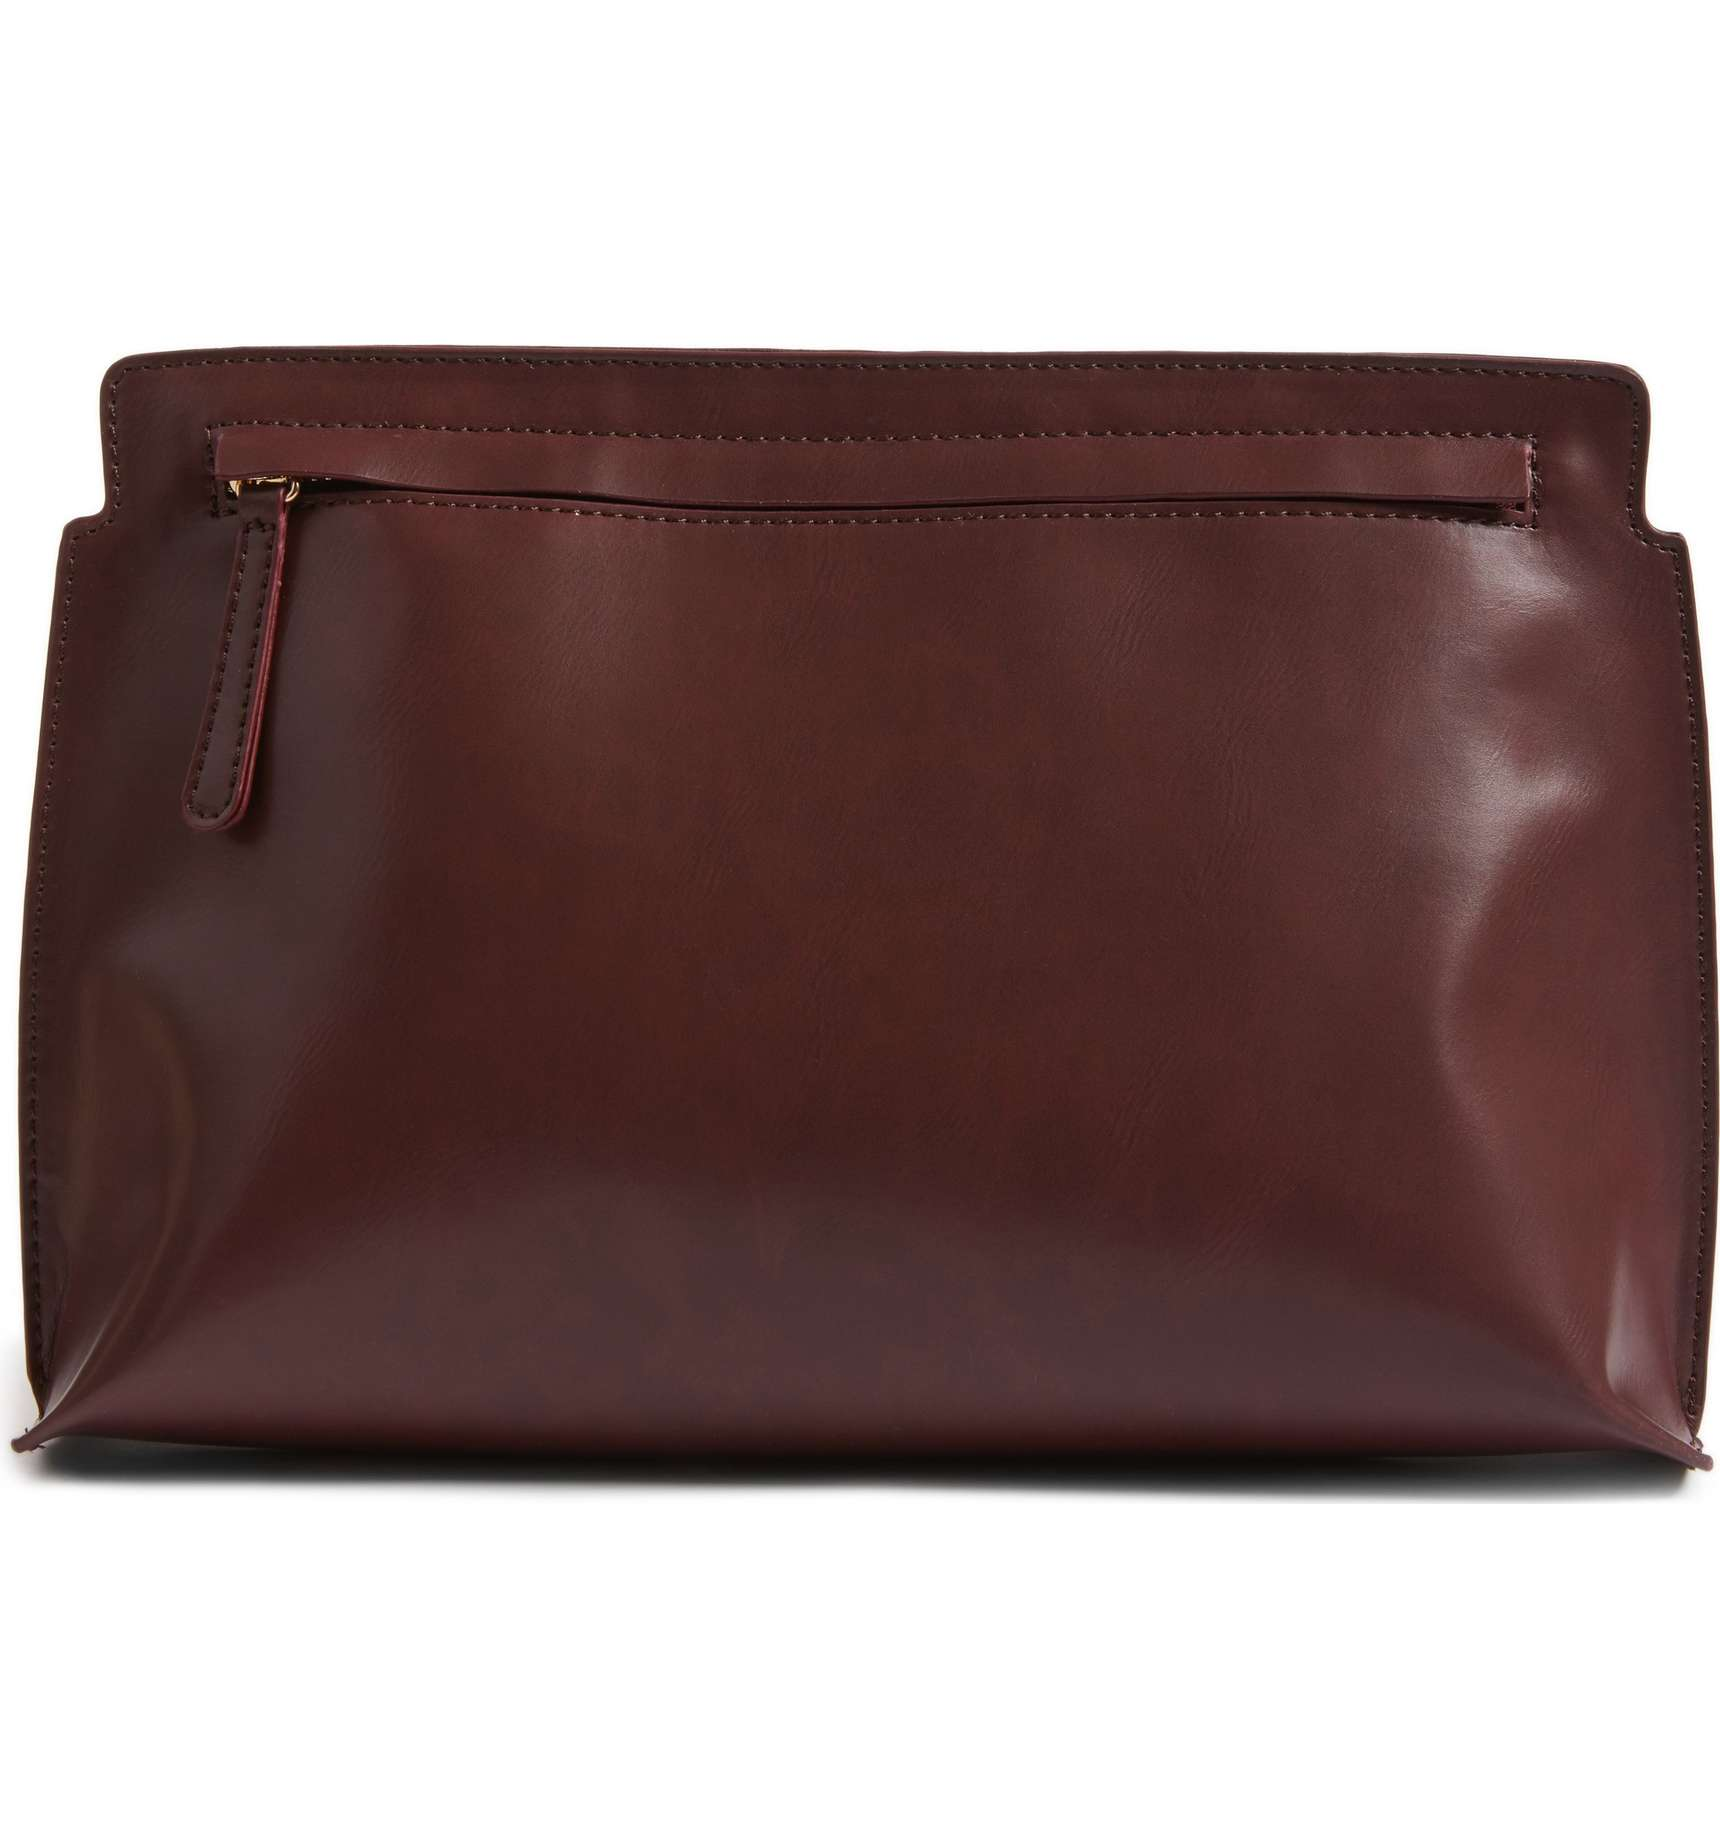 bp faux leather clutch